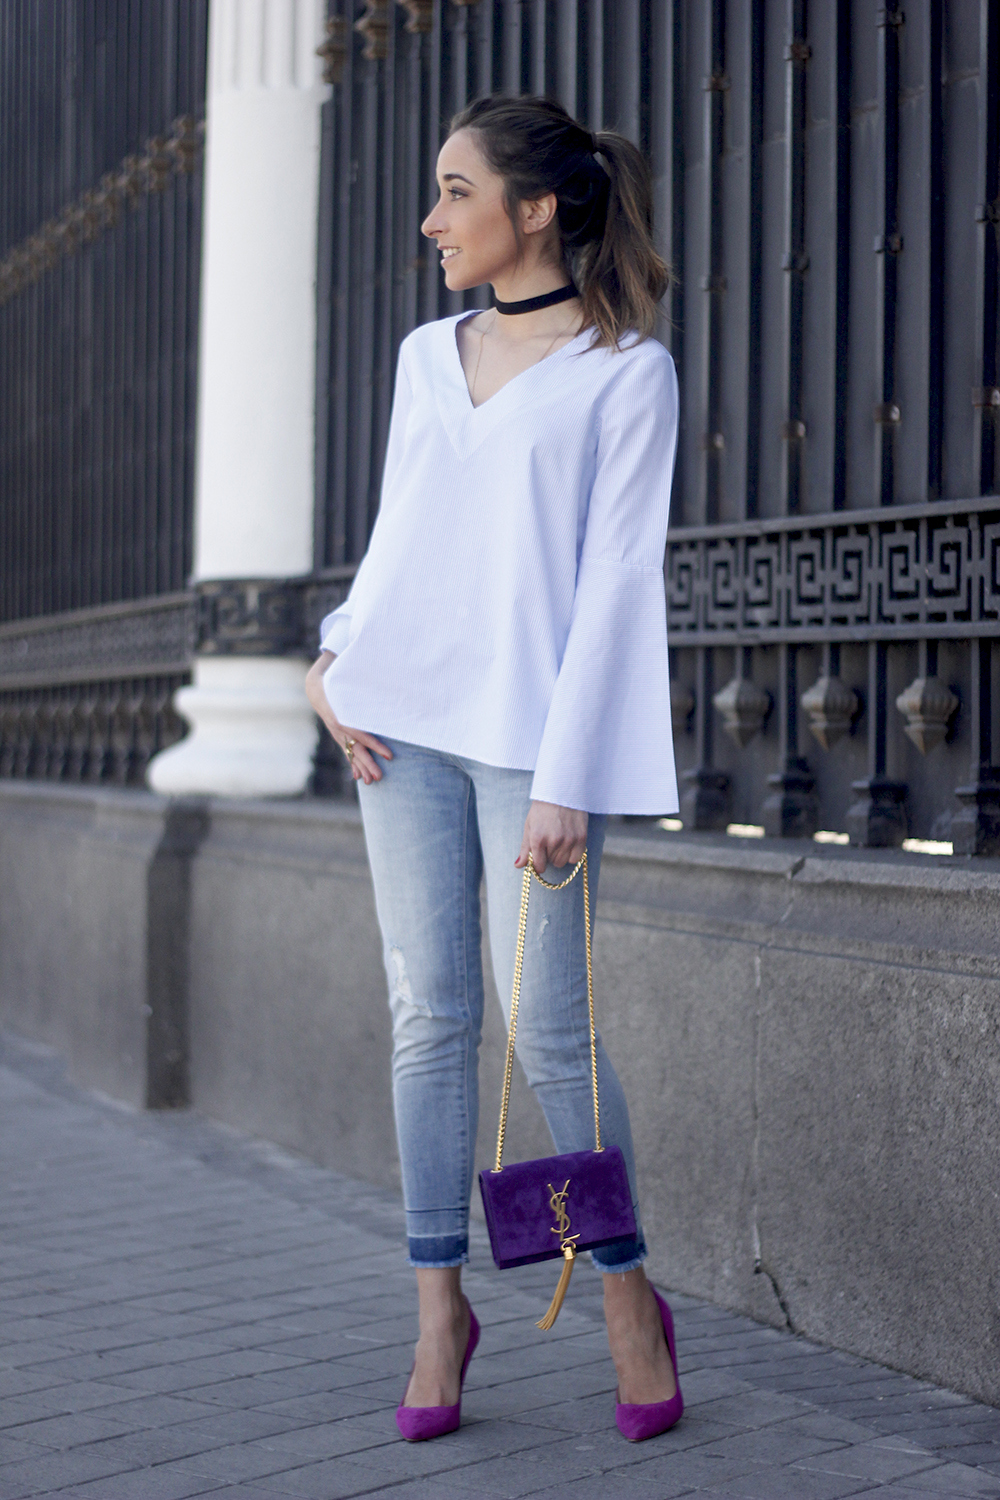 striped blouse with bell sleeves ysl handbag carolina herrena pink heels black choker Aristocrazy Ring outfit02